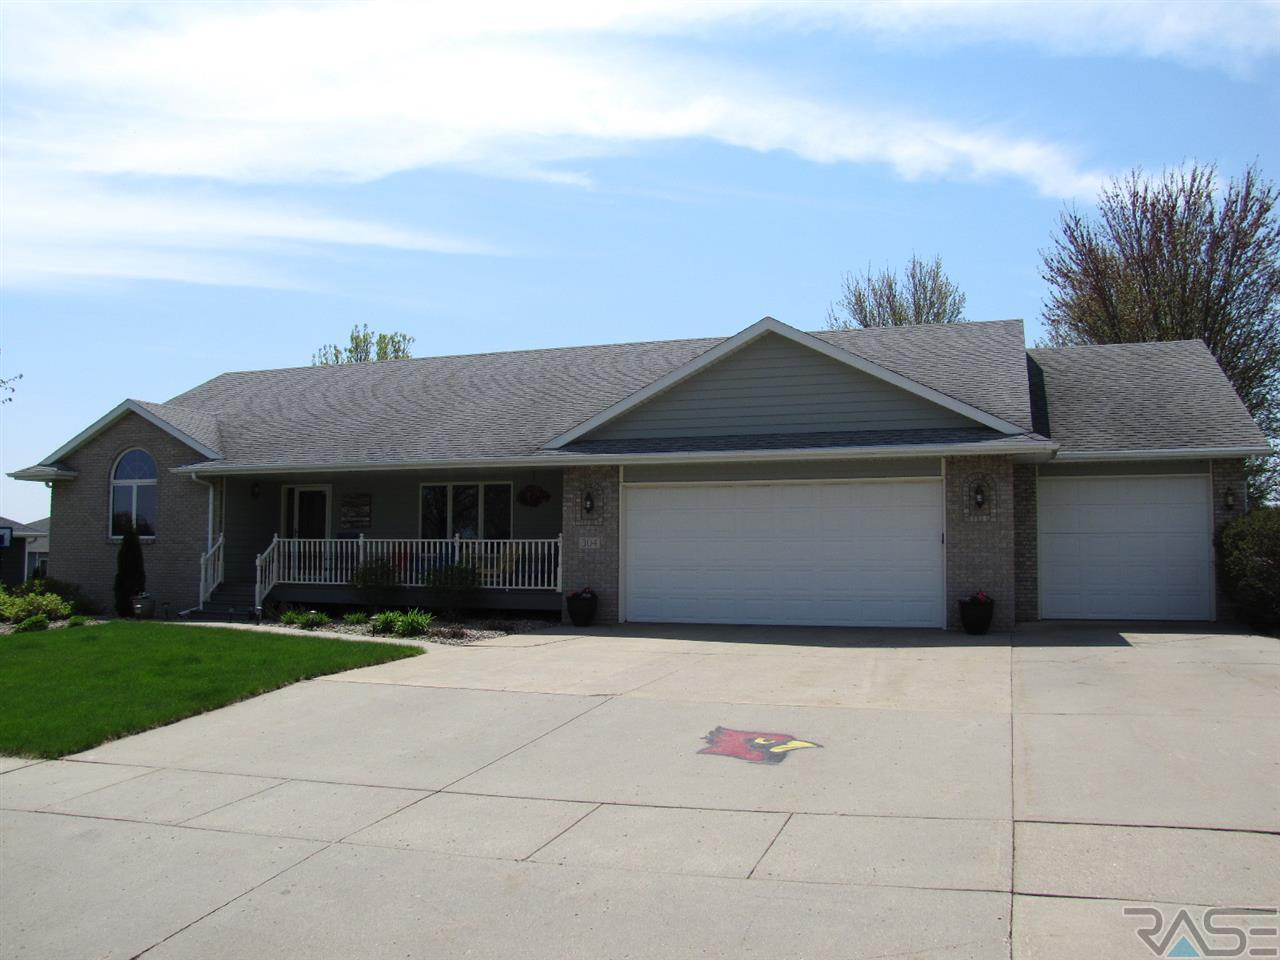 Wonderful place to call home.  This tastefully decorated home features 4 bedrooms, an office or toy room, 4 baths, main floor laundry, spacious updated kitchen with Cambria counter tops, tile floor and backsplash, lighting and stainless steel appliances, the kitchen is open to the dining room with gorgeous hardwood floors,  formal living room, and custom built ins.  The master bedroom features a large walk-in closet and master bath. The lower level boasts 2 spacious bedrooms with ample storage, a full size bath, an office/toy room, and a wonderful family room with a newer gas fireplace to cozy up too.  You'll love the oversized 3 stall garage room for everyone including the toys. Outdoor features include a deck leading from the dining room, and a paver patio to entertain guests in your new outdoor kitchen.  If you prefer you can also enjoy that final cup of coffee for the day from the covered front porch. Nothing to do but move in. Don't wait - Call your favorite agent today!